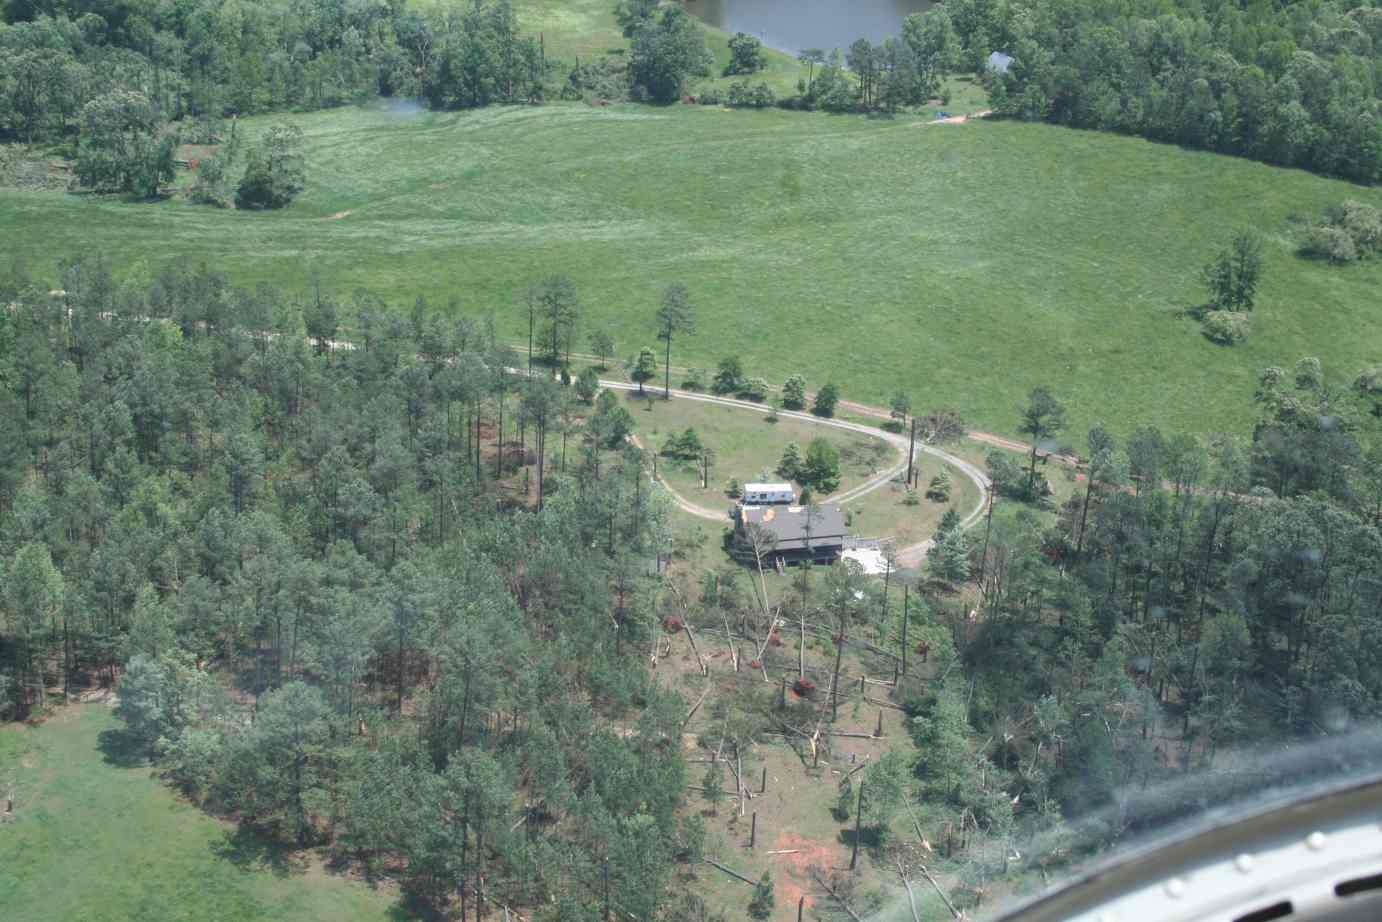 [ Aerial view of damage to home and tornado's path through wooded area. ]